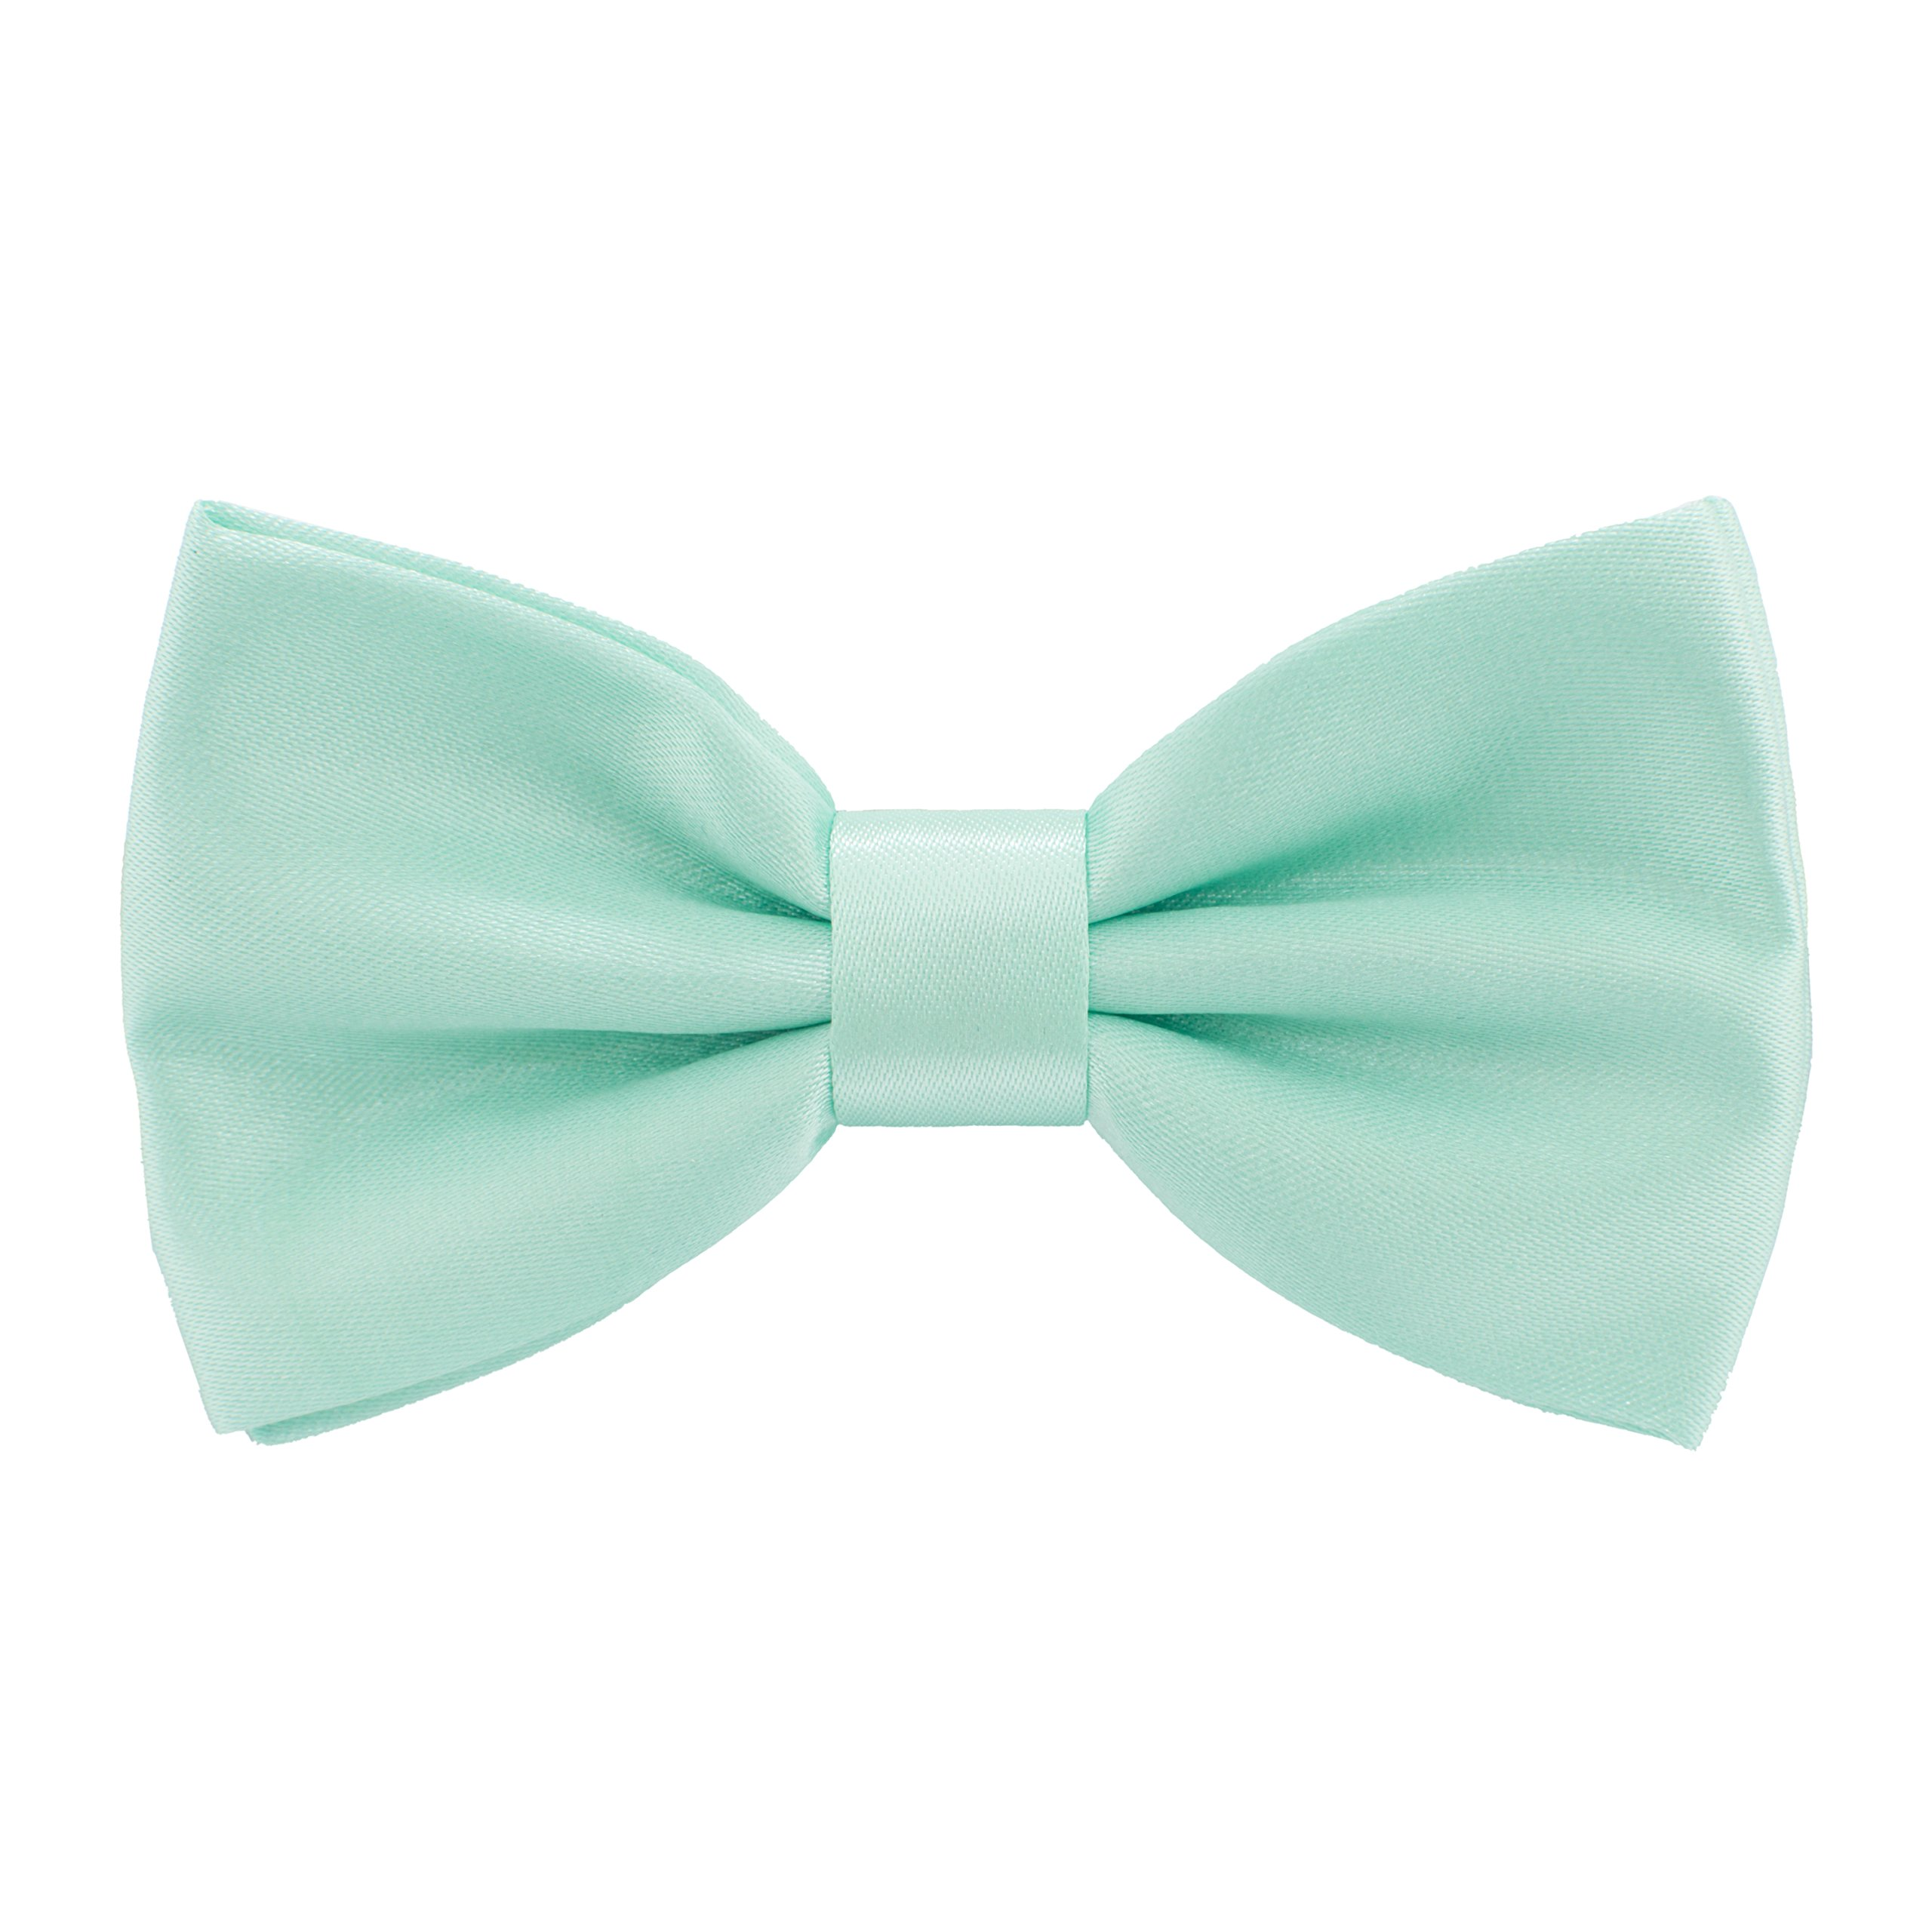 Satin Classic Pre-Tied Bow Tie Formal Solid Tuxedo, by Bow Tie House (Small, Mint)